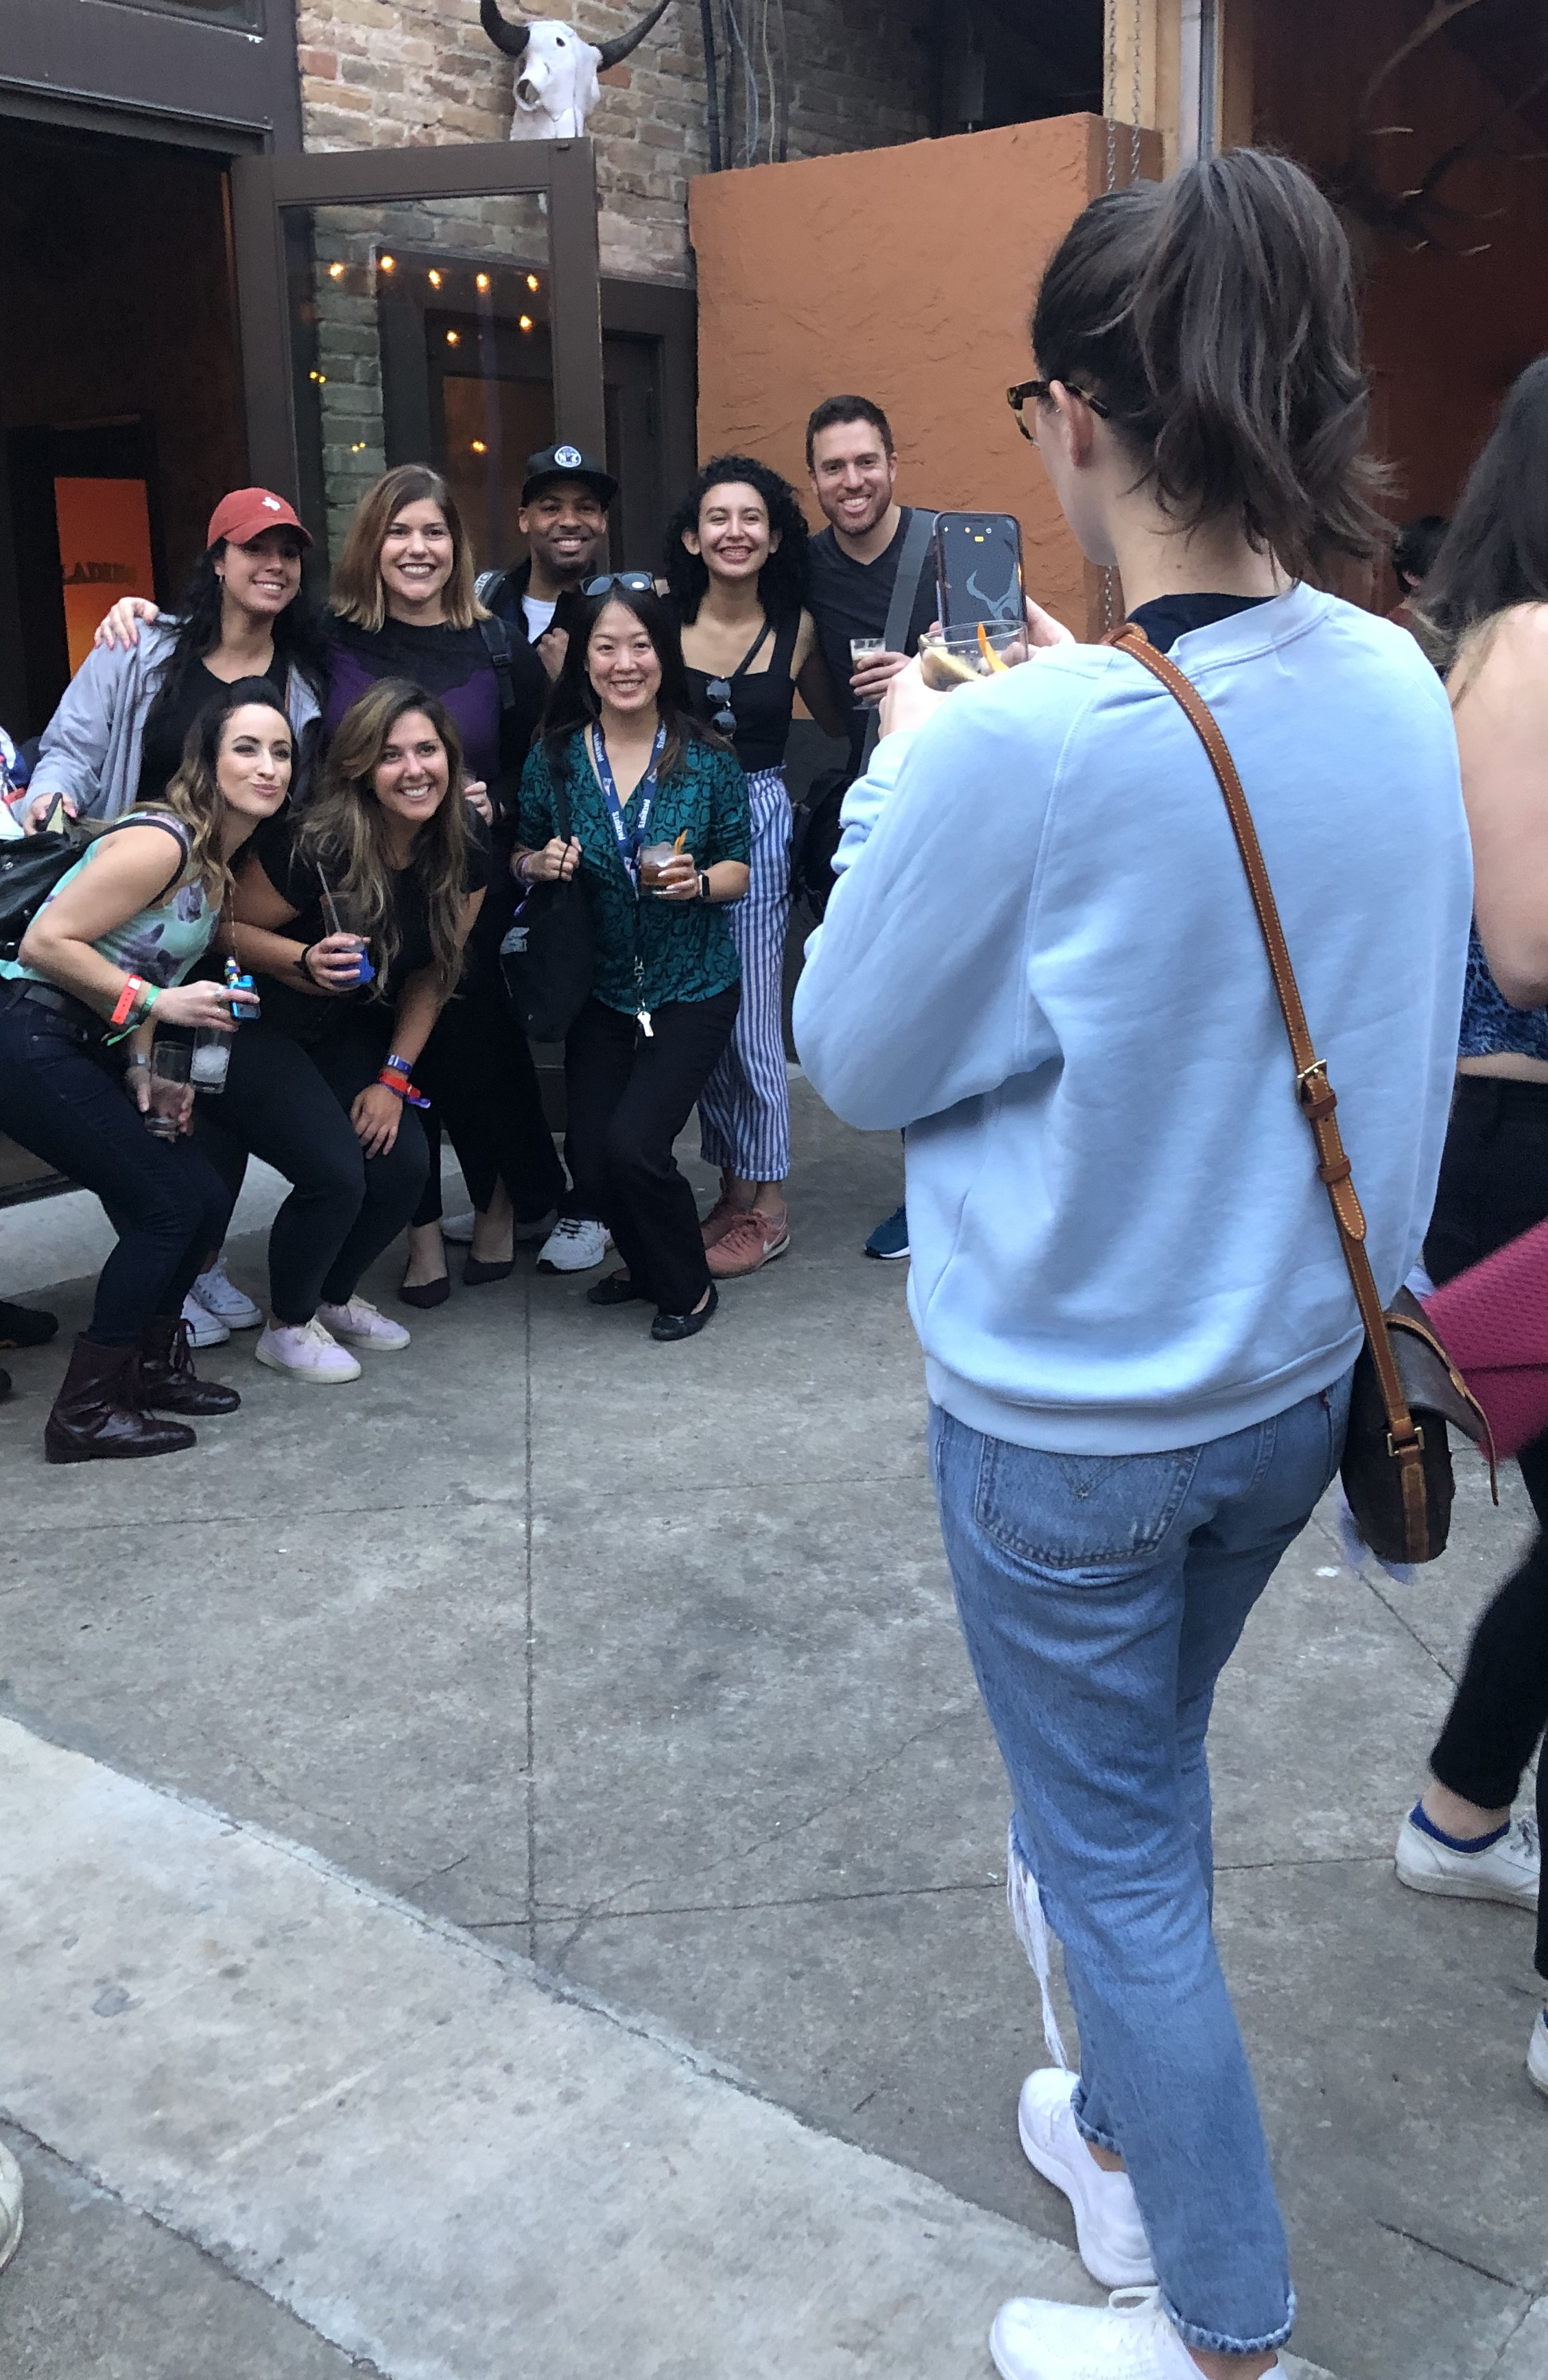 group photo party